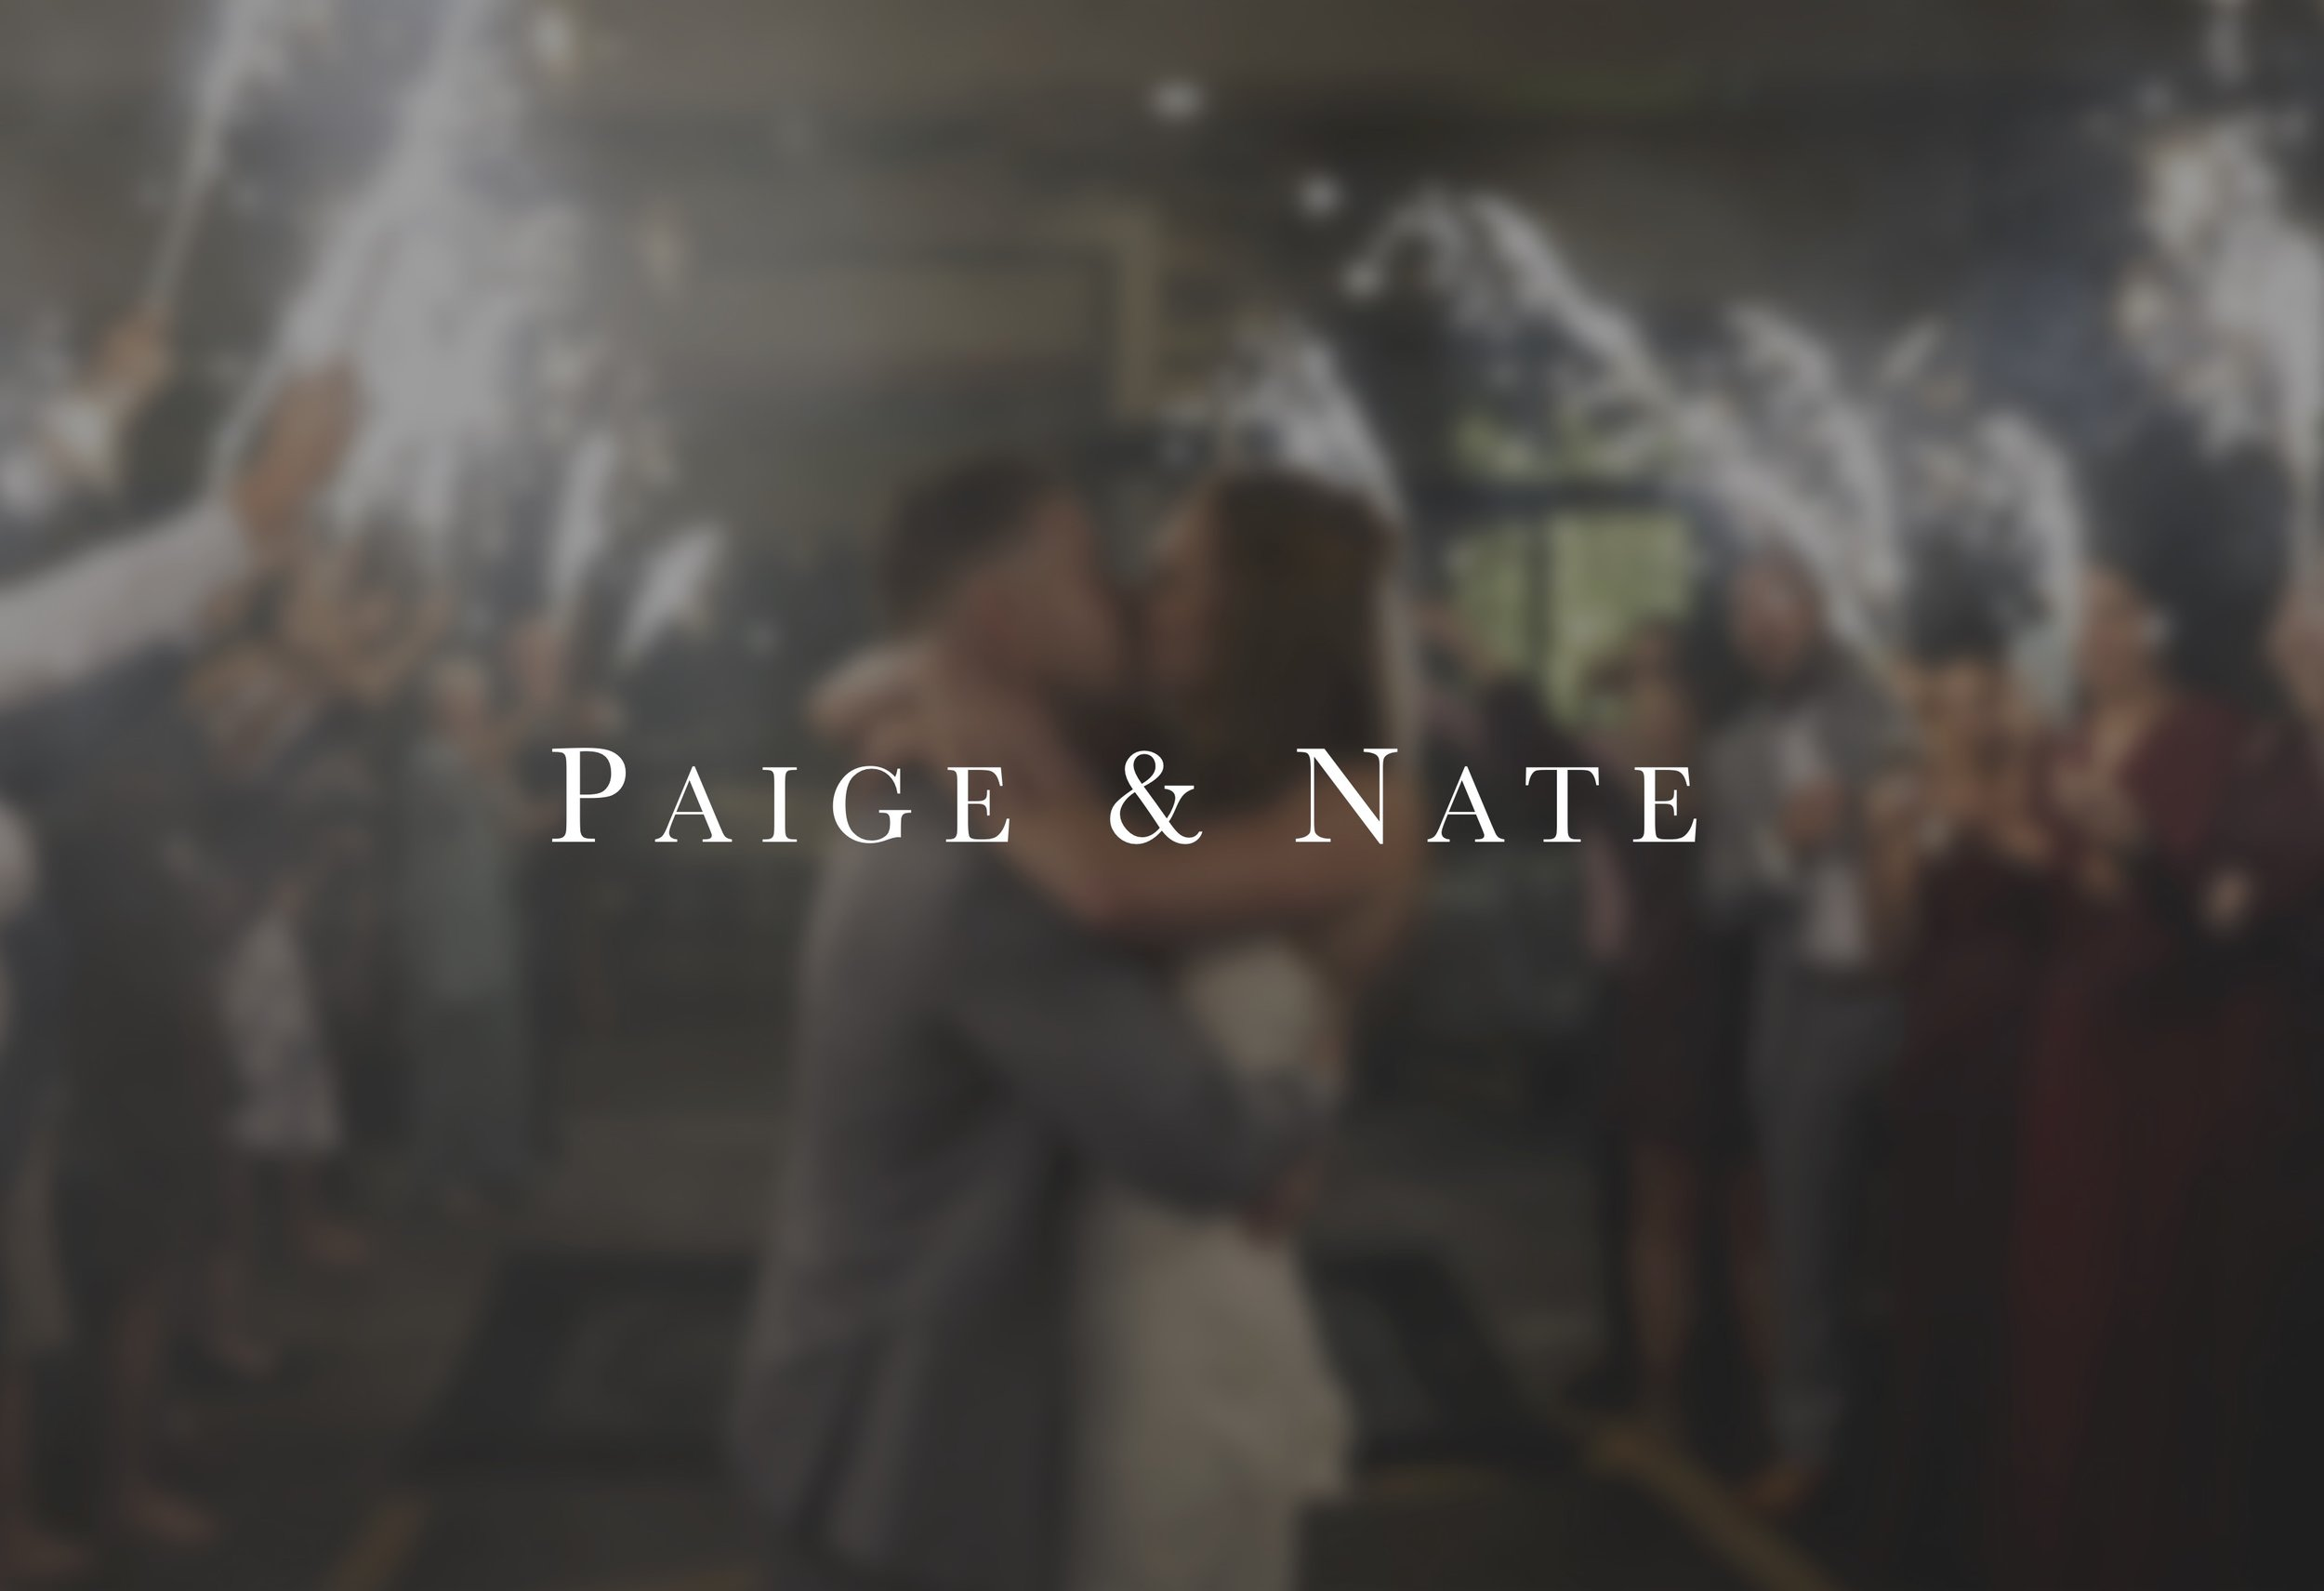 Nate & Paige Title Pic .jpg